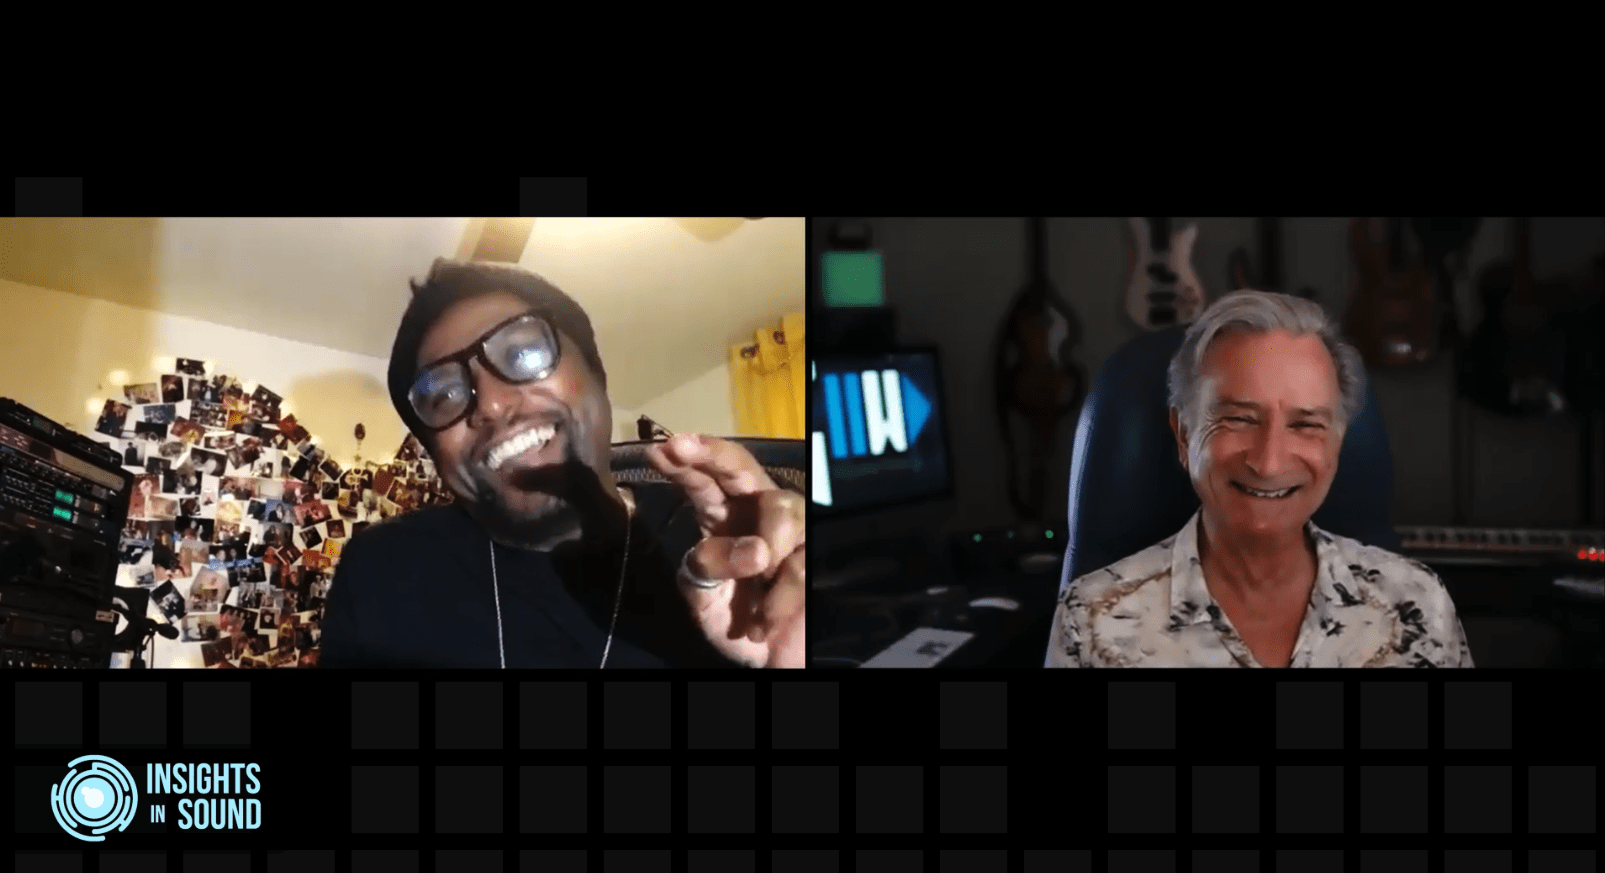 Insights in Sound – Morris Hayes, Keyboardist/Musical Director (Episode 11)